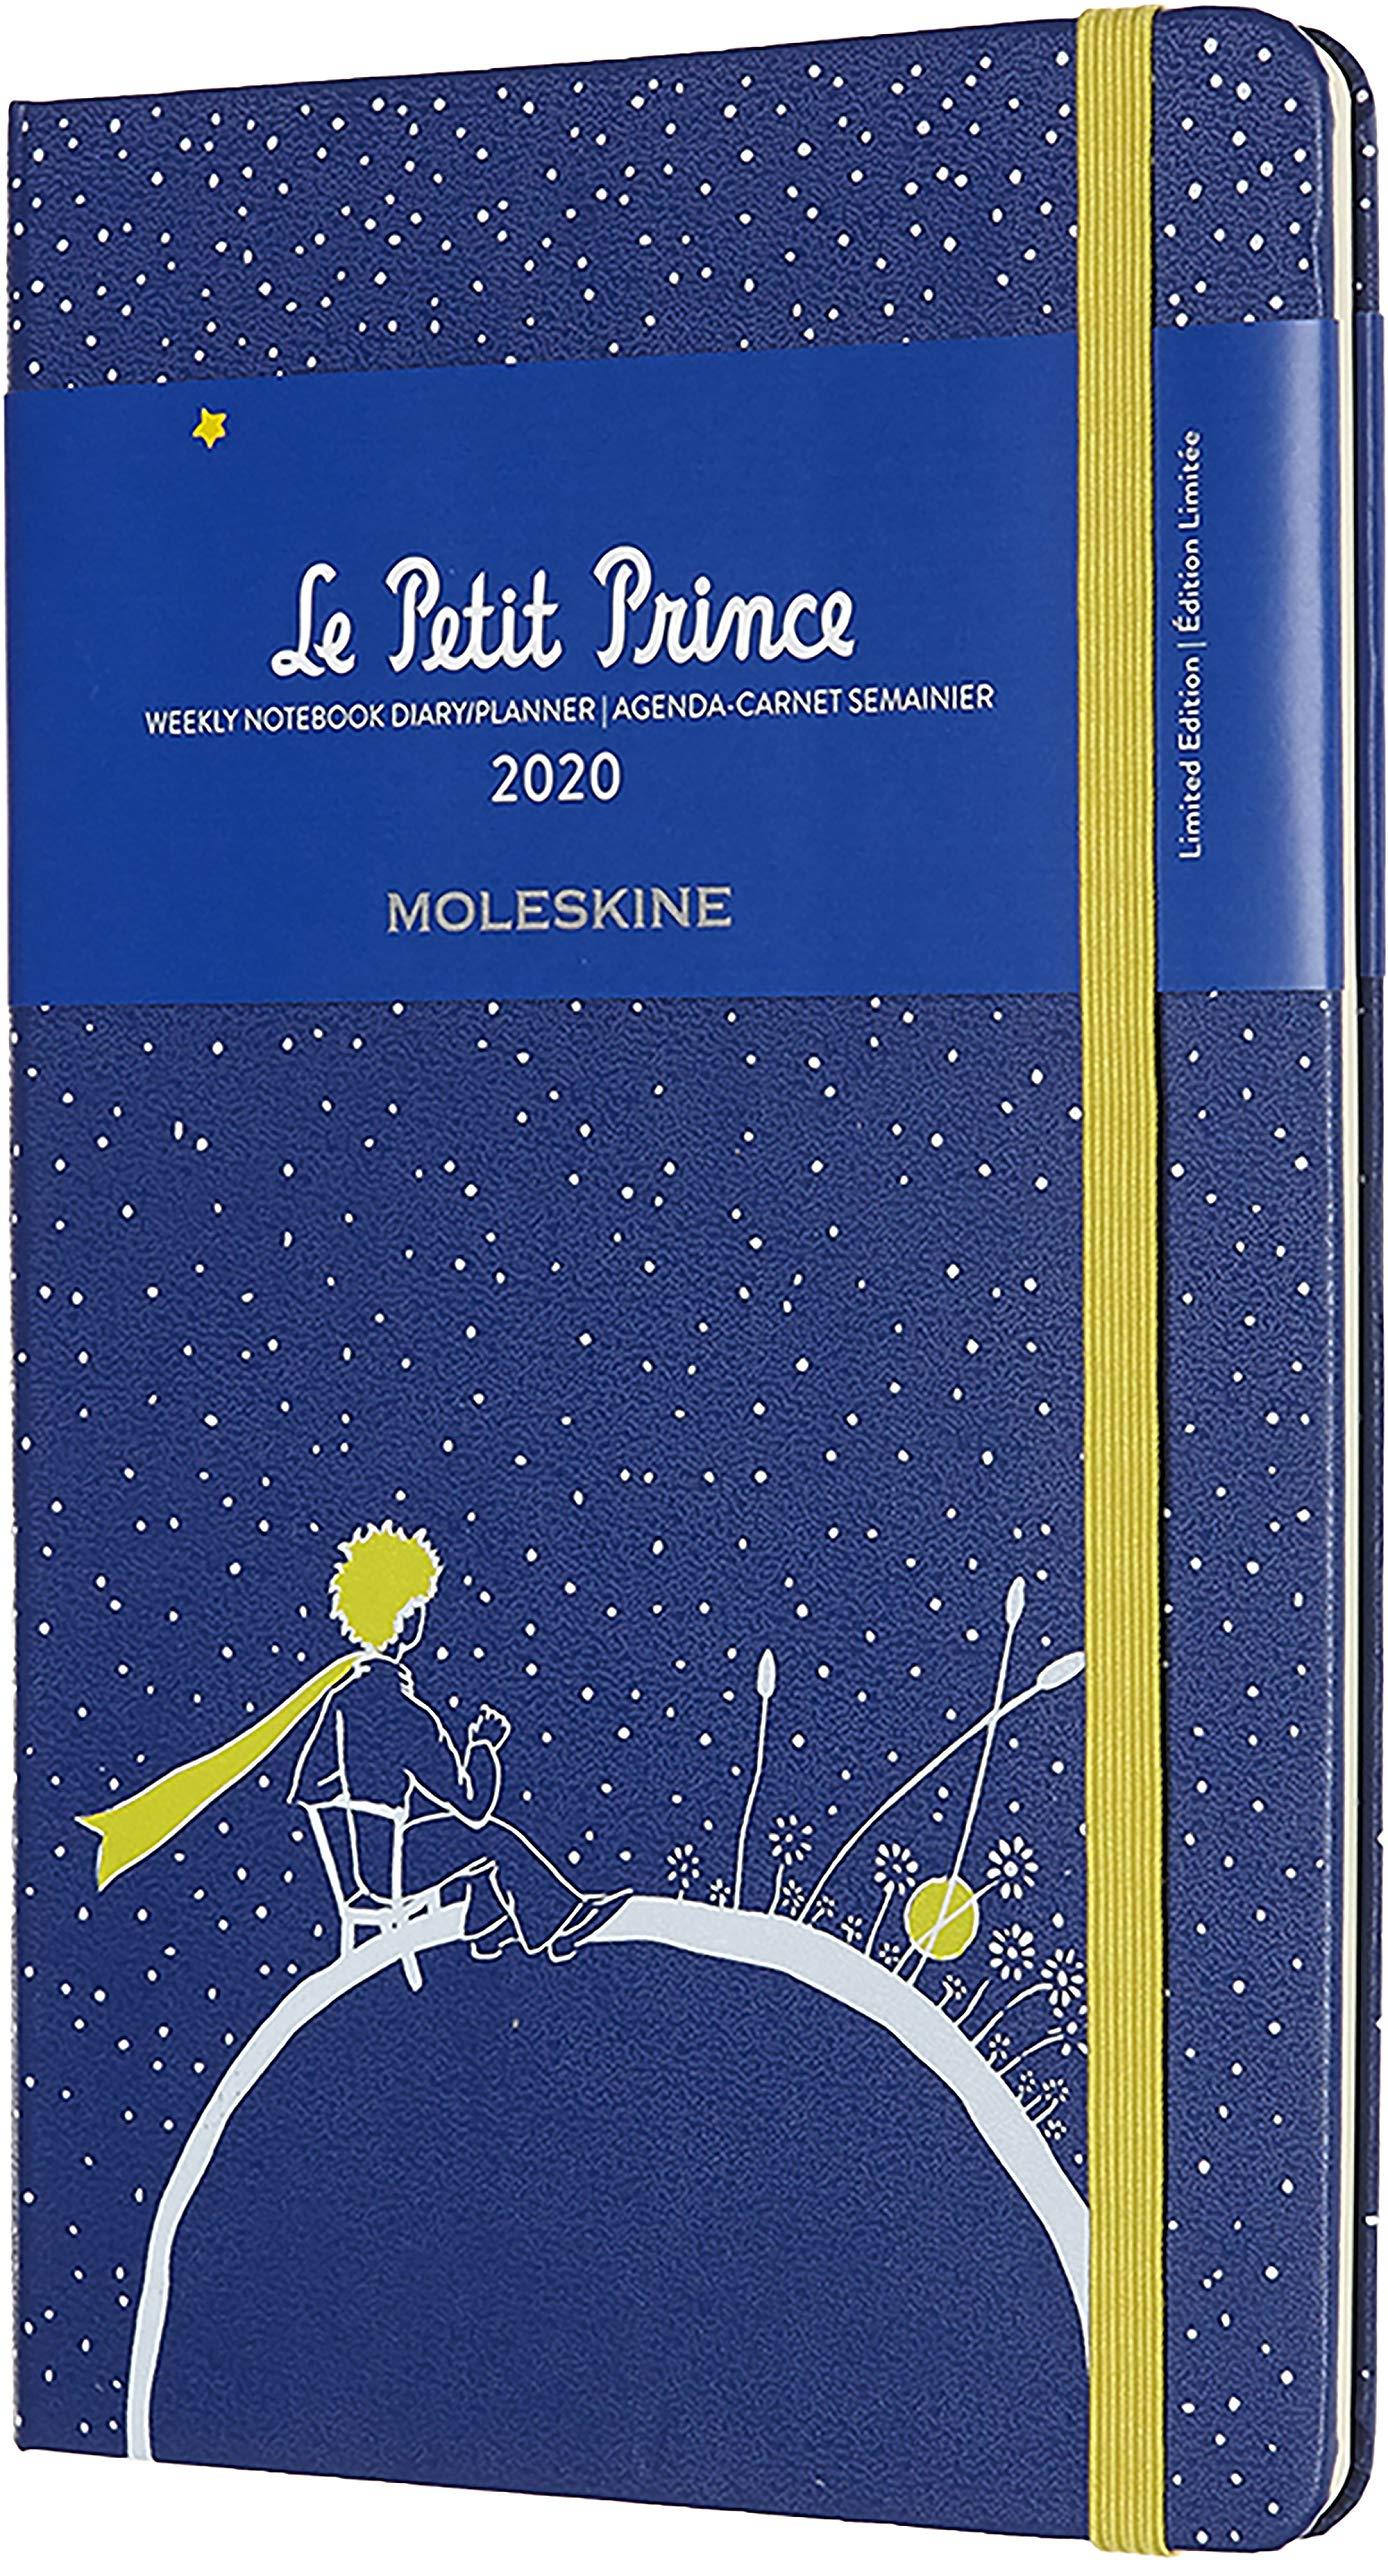 PETIT PRINCE WEEKLY NOTEBOOK L PLANET 2020